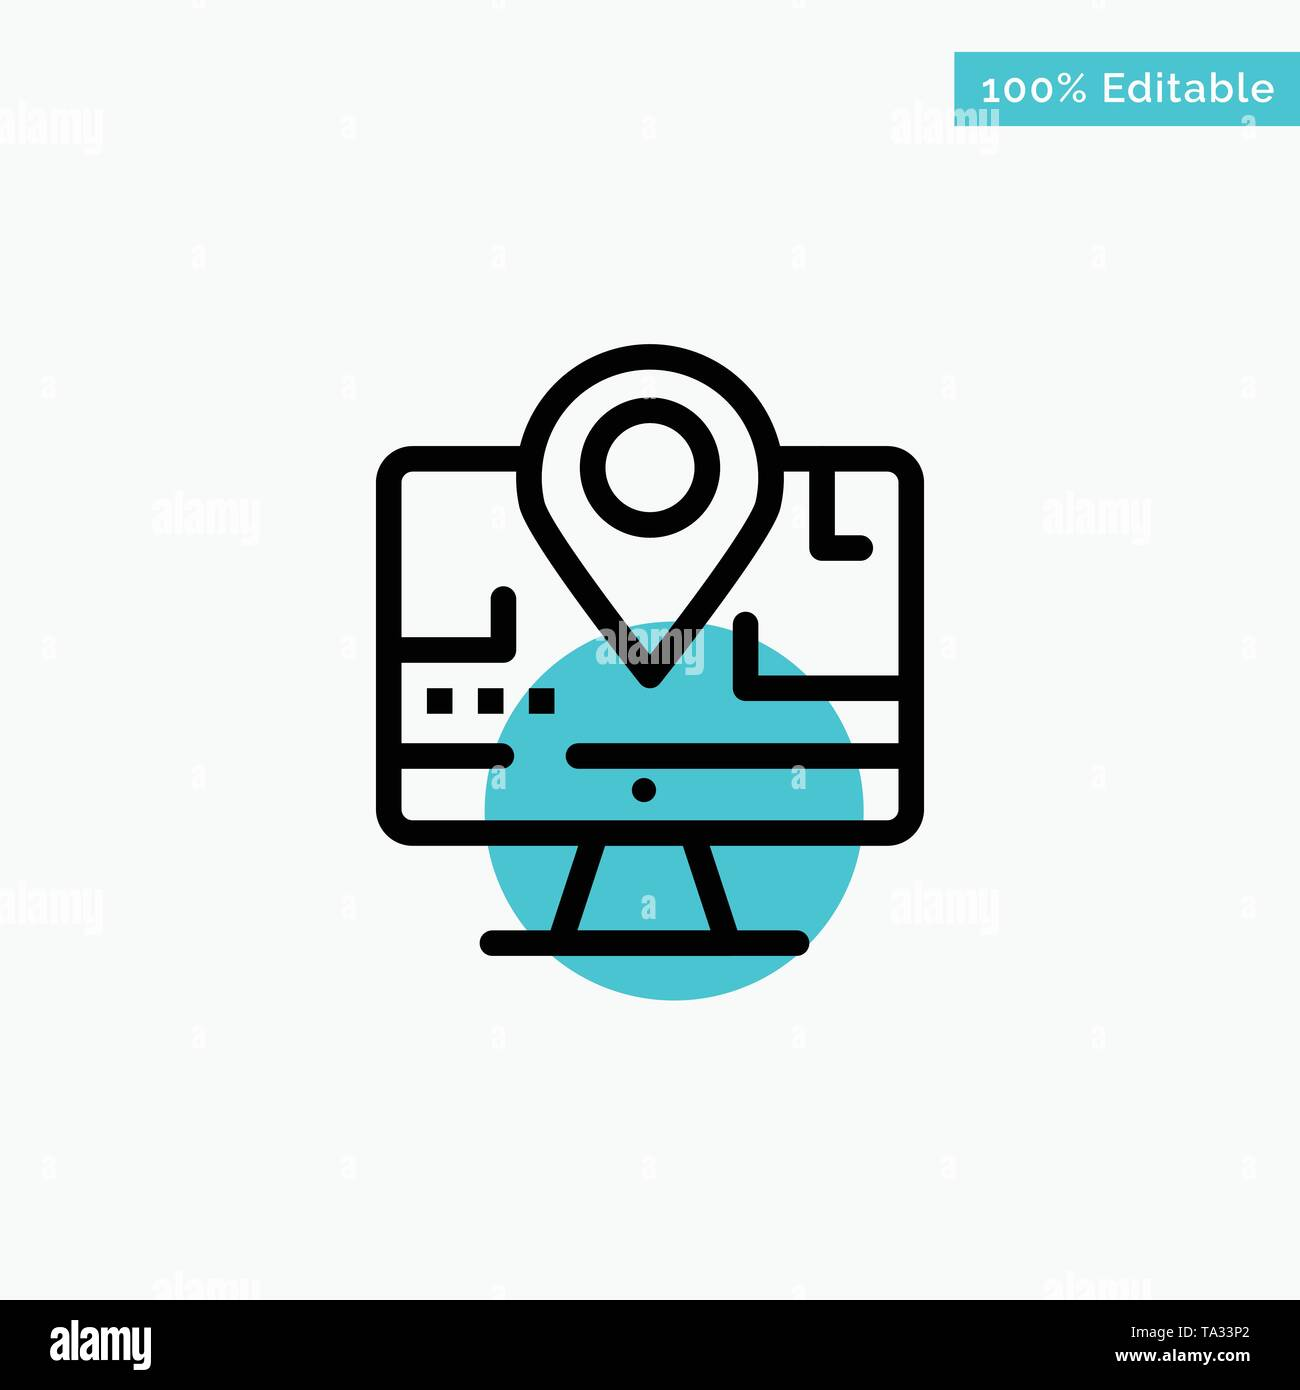 Computer, Map, Location, Education turquoise highlight circle point Vector icon - Stock Image